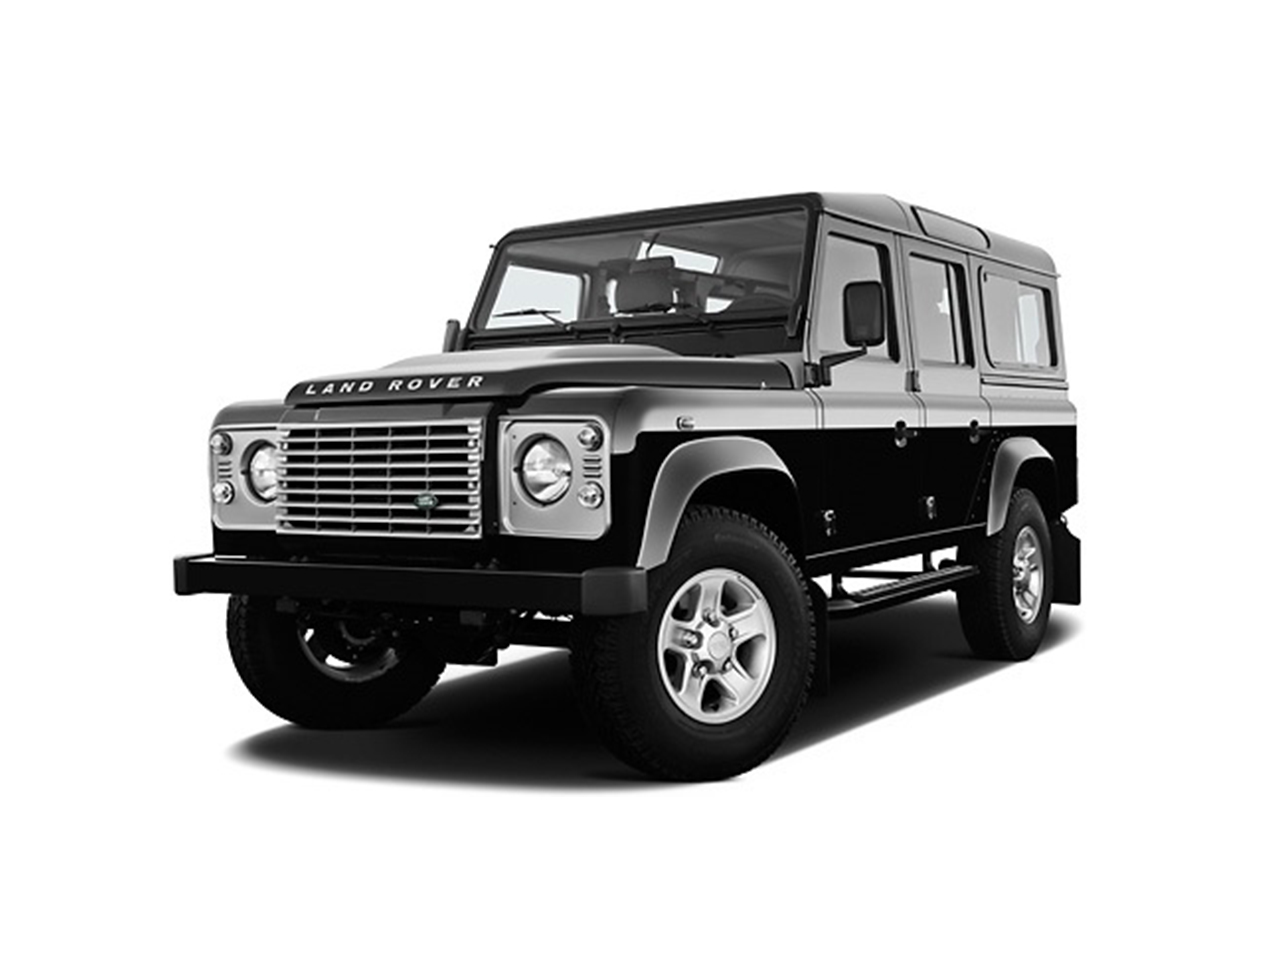 2017 land rover defender prices in qatar gulf specs. Black Bedroom Furniture Sets. Home Design Ideas